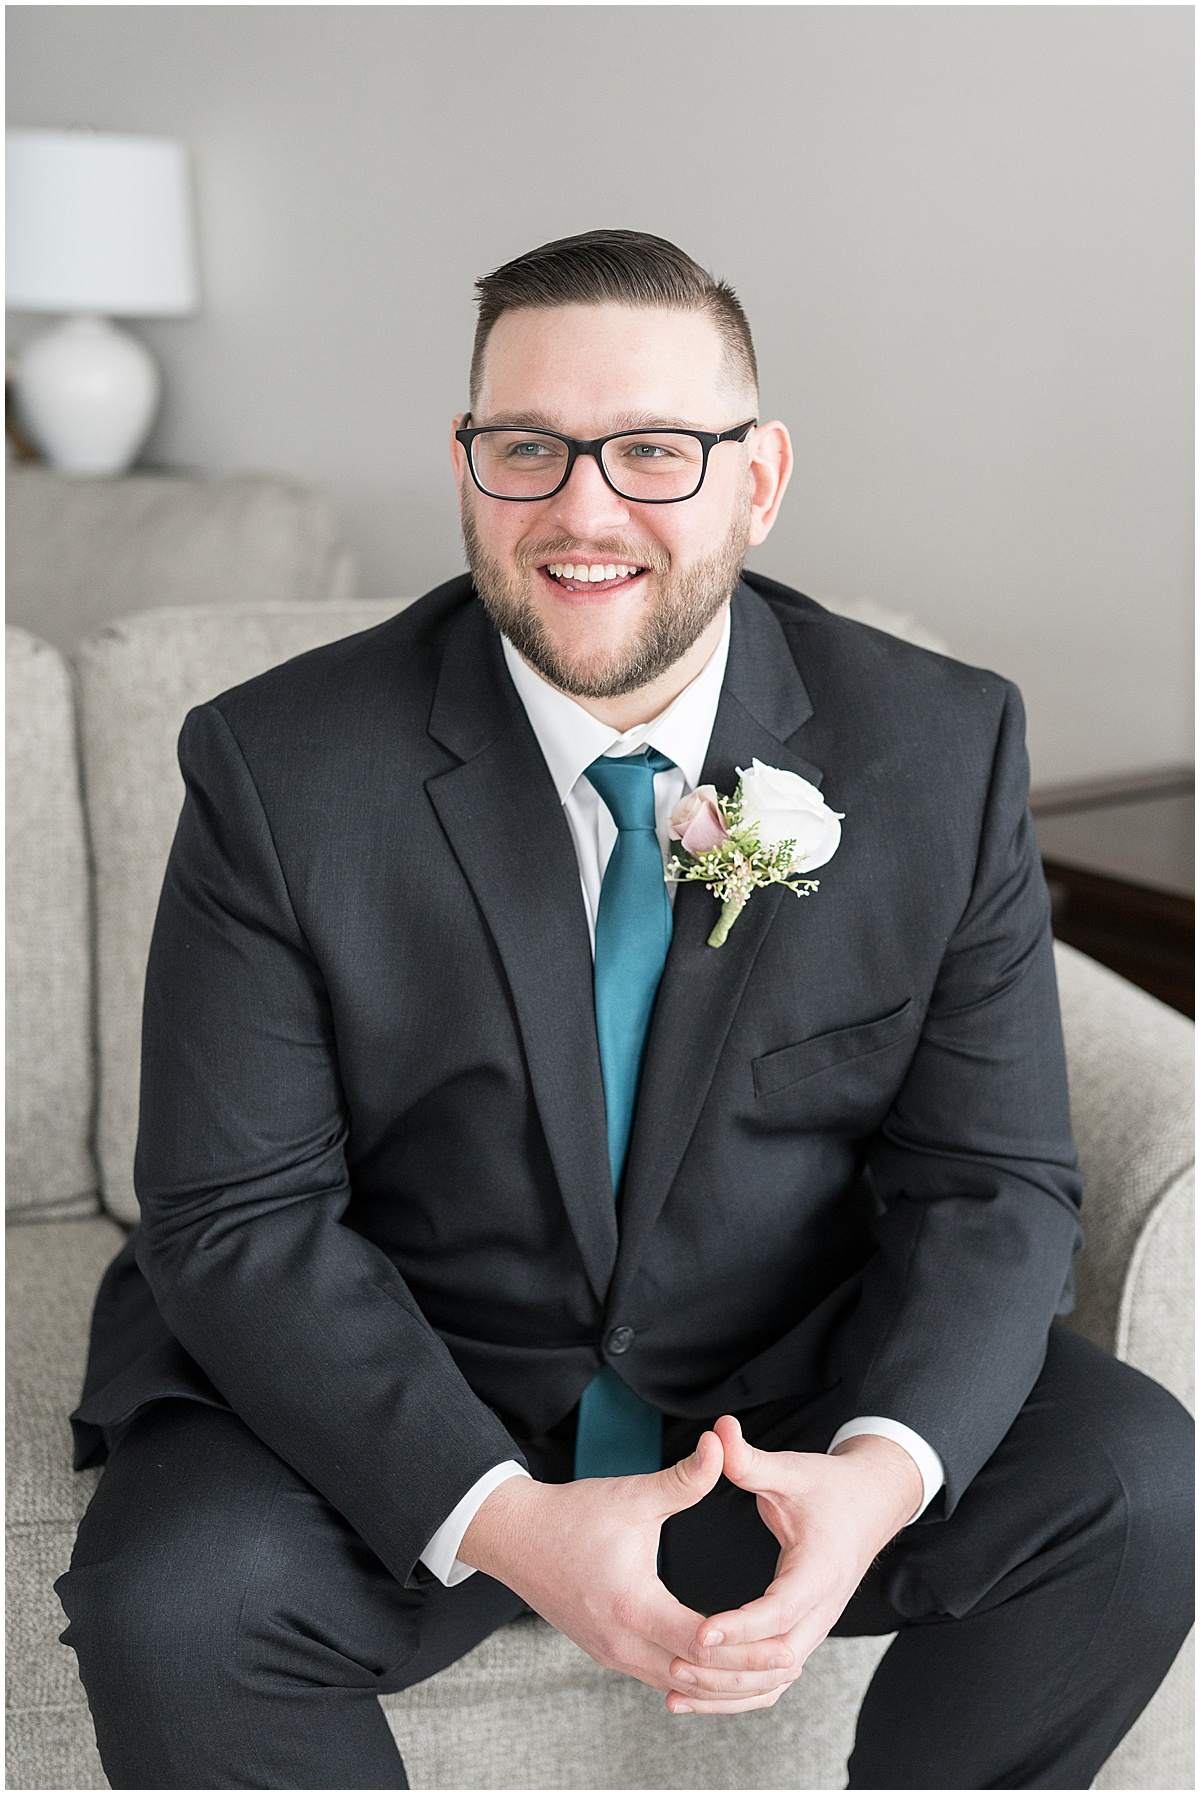 Groom portraits for at-home, socially distanced wedding in Tinley Park, Illinois